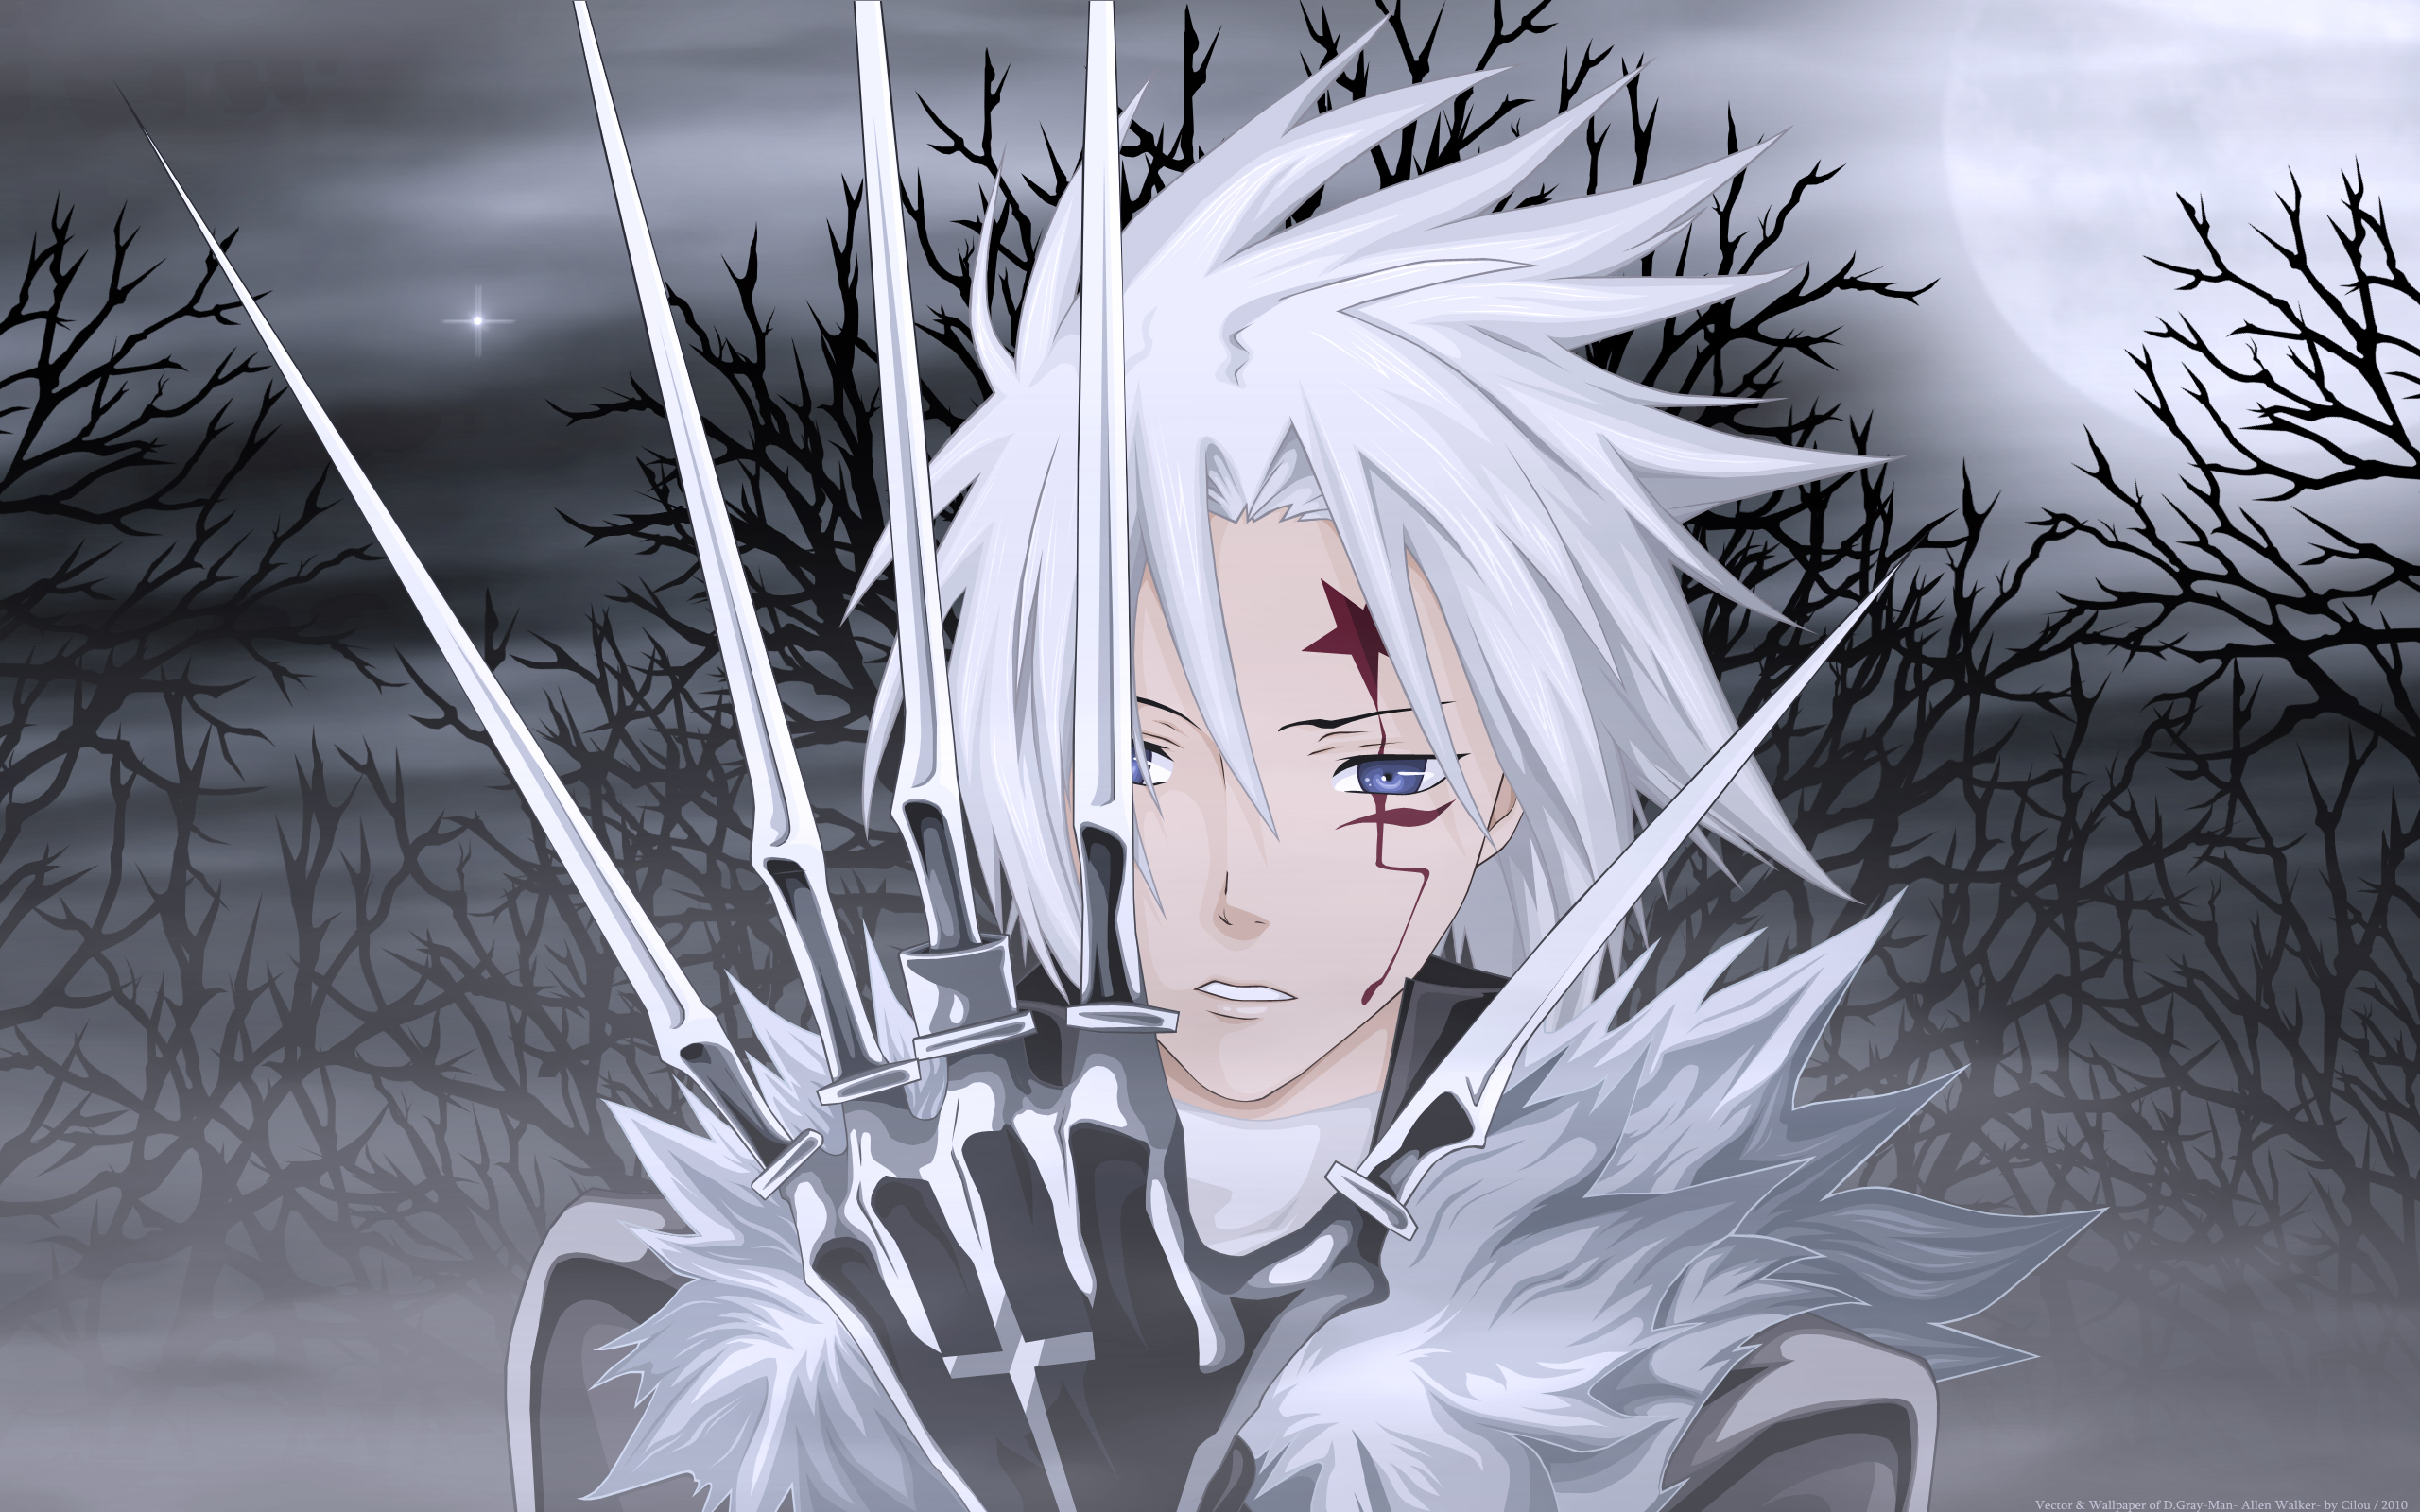 D gray man d gray man wallpaper 25475053 fanpop - D gray man images ...